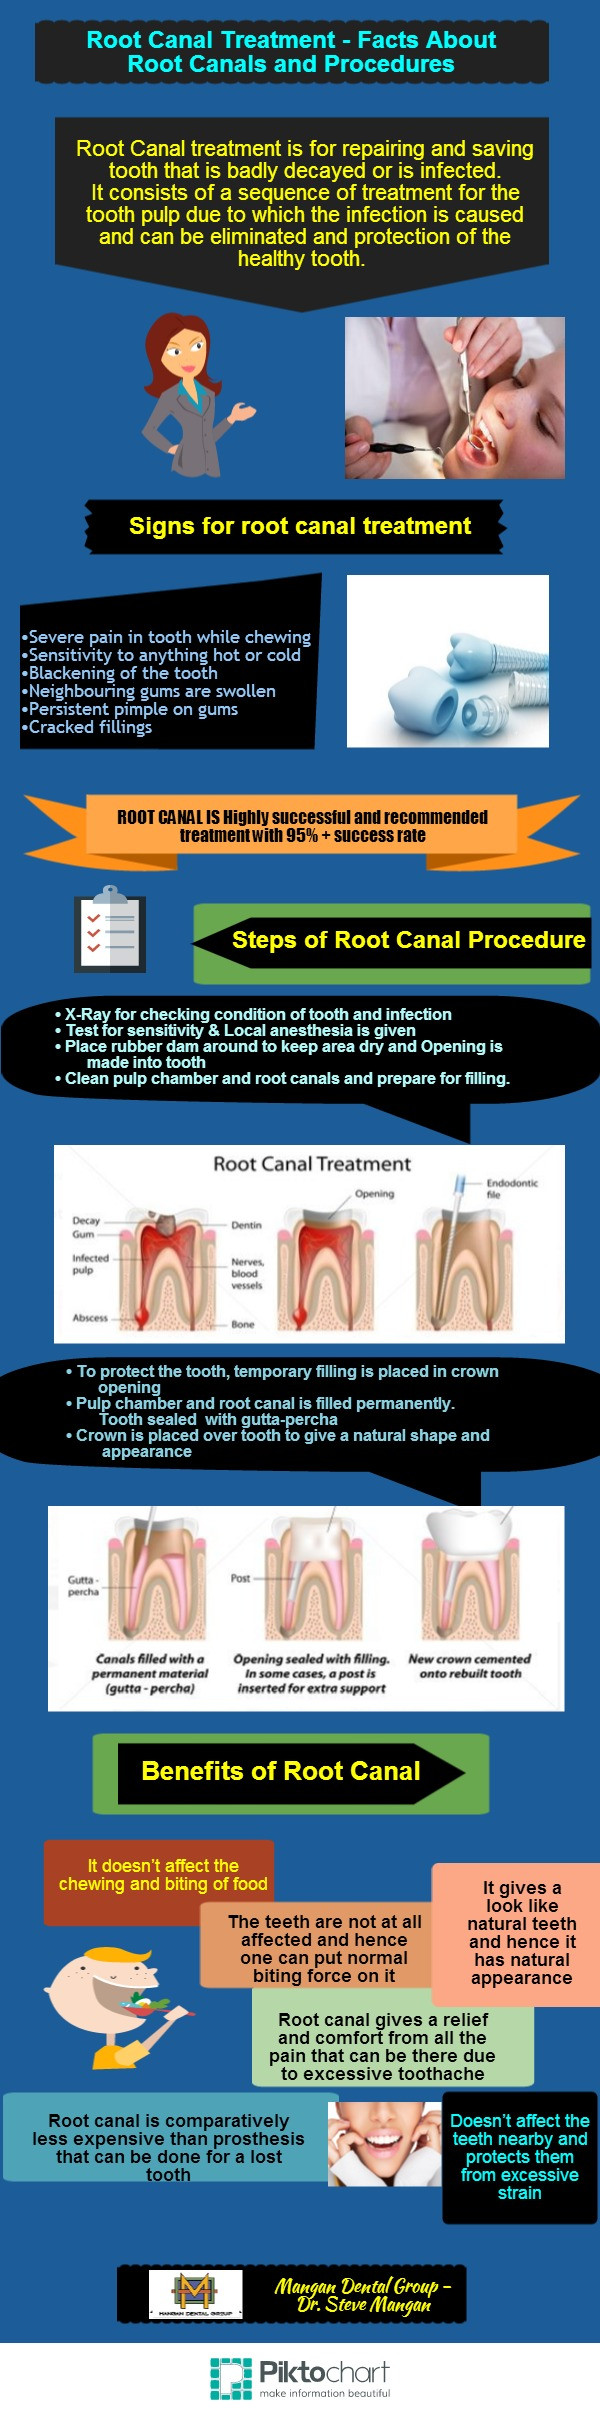 Root Canal Treatment - Facts About Root Canals and Procedures